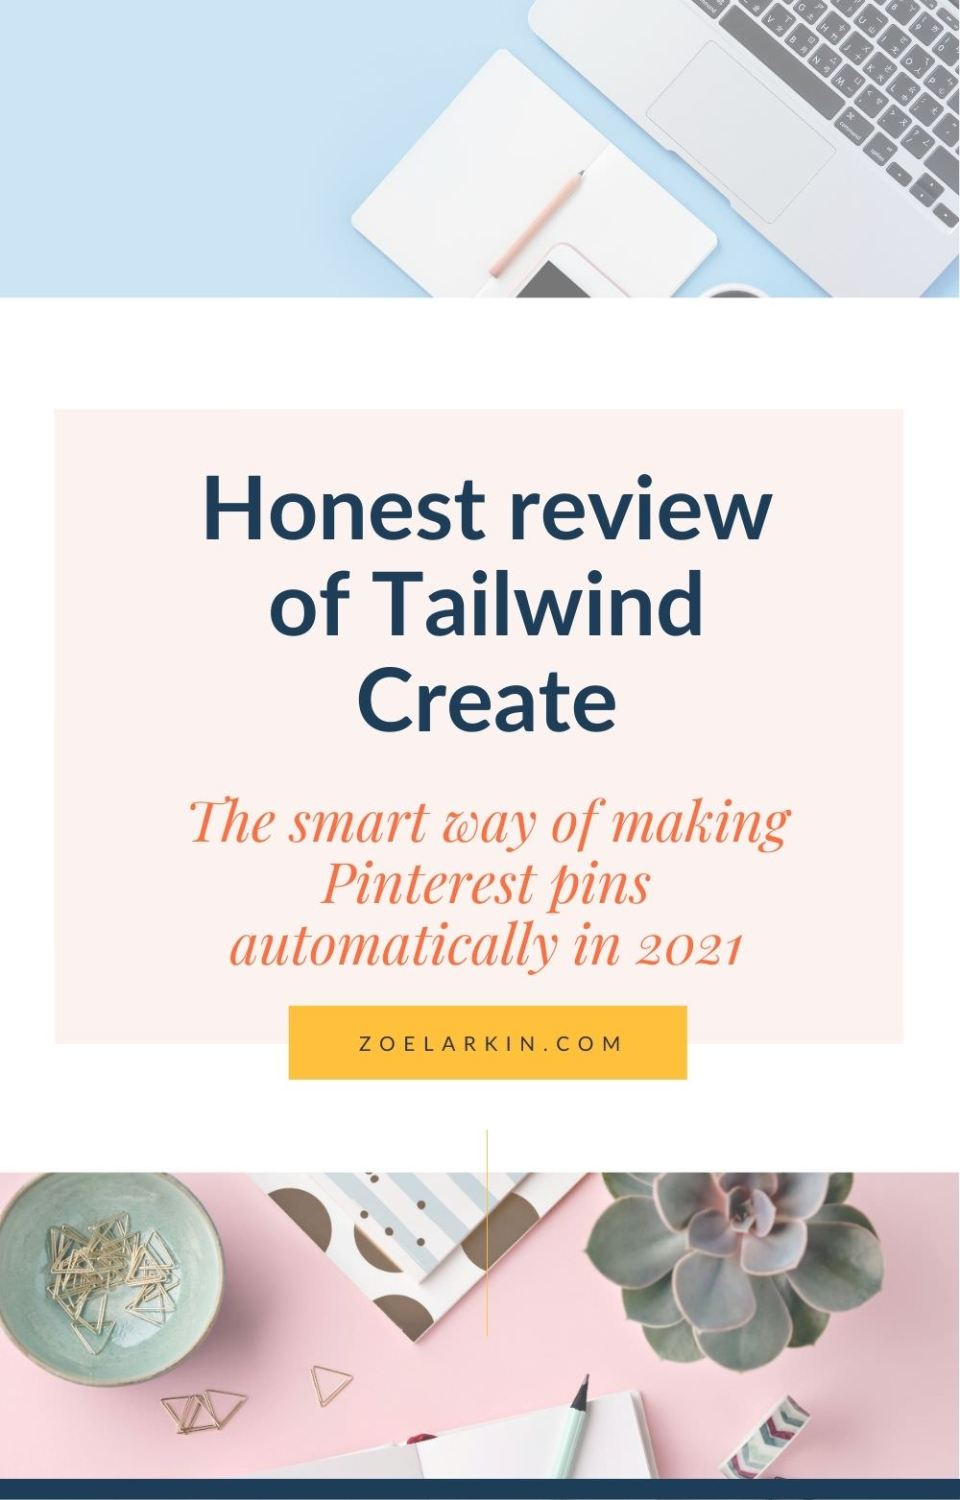 Whether you're a serious pinner or new to Pinterest marketing, you've probably heard of Tailwind, the best Pinterest scheduler tool. They've released a new automatic pin design tool called Tailwind Create - new for 2021! Tailwind Create uses AI to make the pin design process easy. By inputting your blog post URL, it pulls gives you dozens of AI-generated designs that you can download and schedule to Pinterest. I review the automated Tailwind Create pin creation process! #tailwindcreate #tailwind